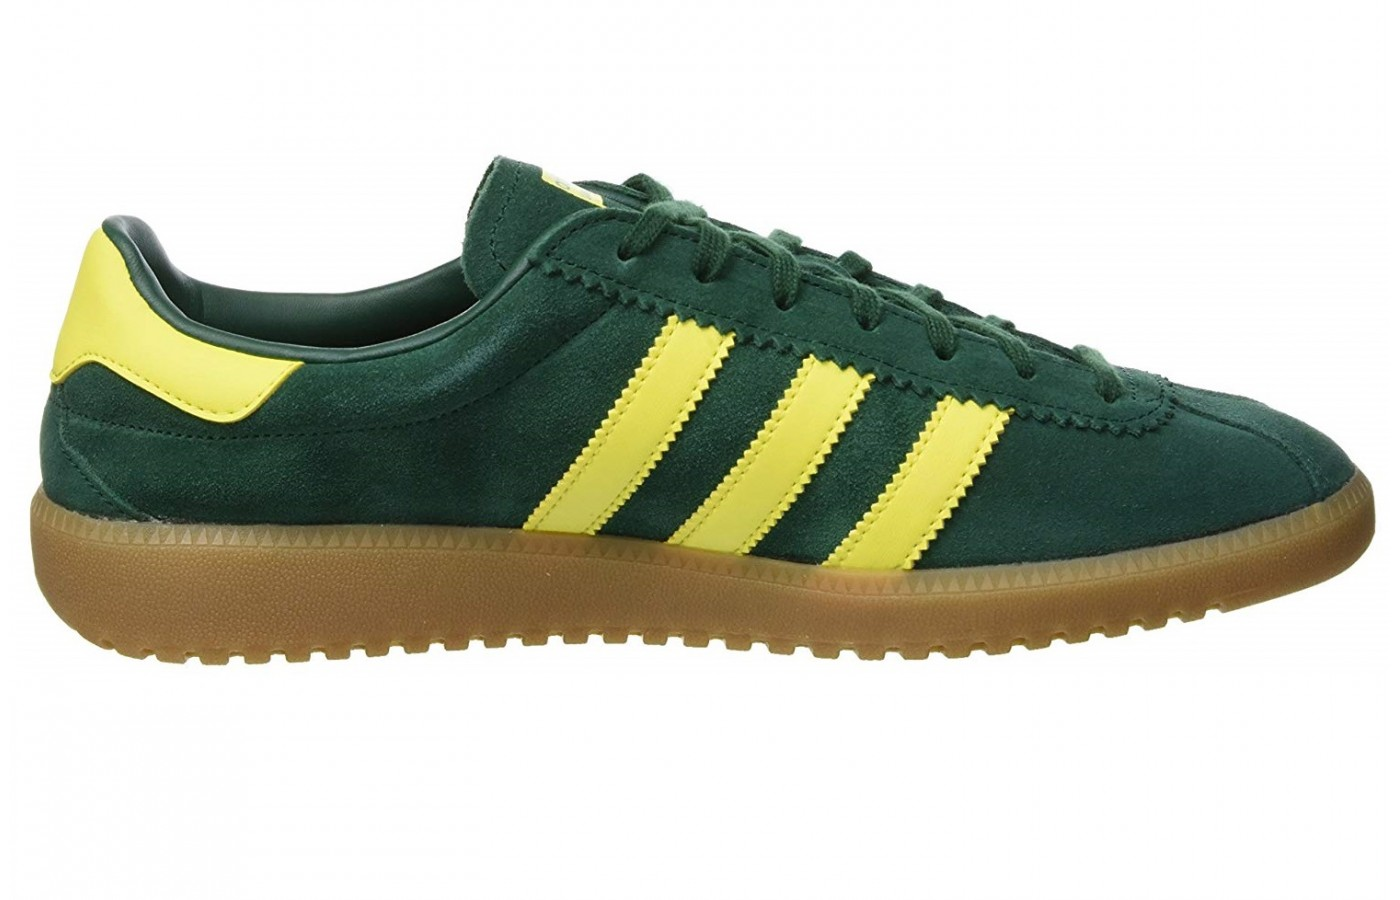 The Adidas Bermuda is an attractive in appearance, offering a more retro look.